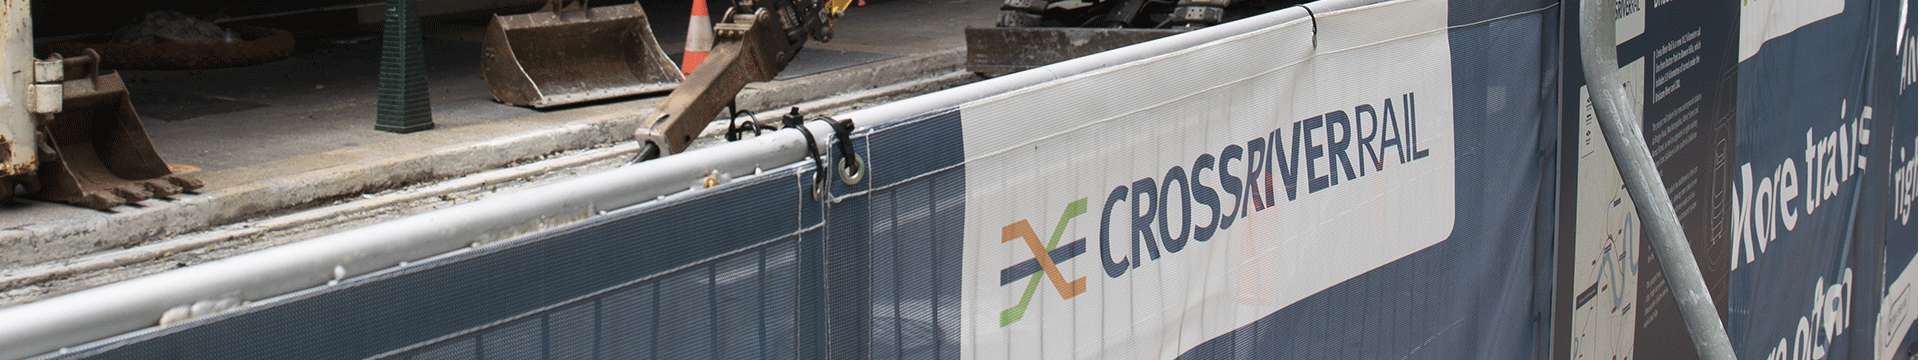 Work is underway on Cross River Rail